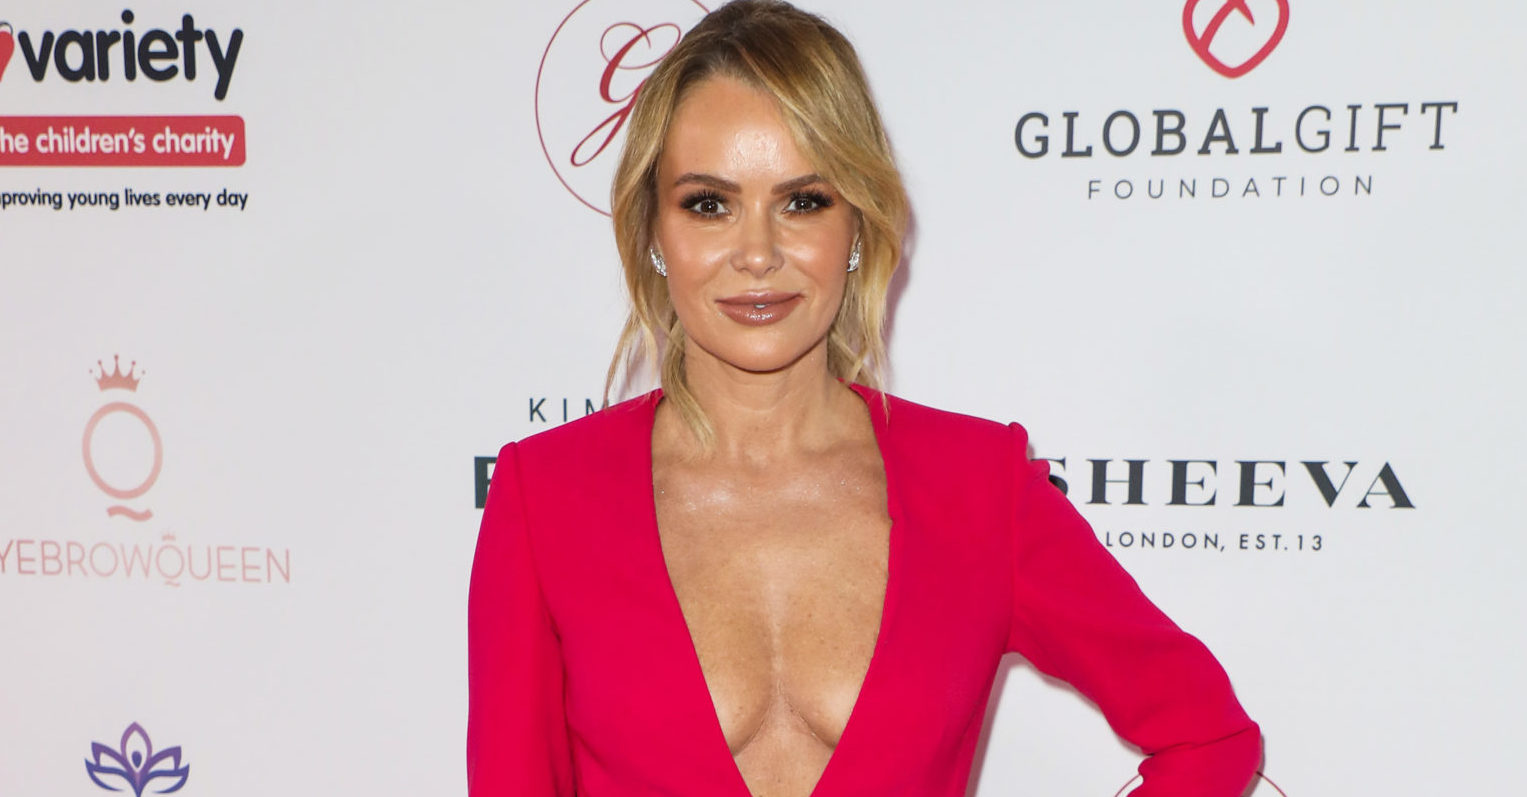 Amanda Holden praised for looking 'classy' in demure floral dress